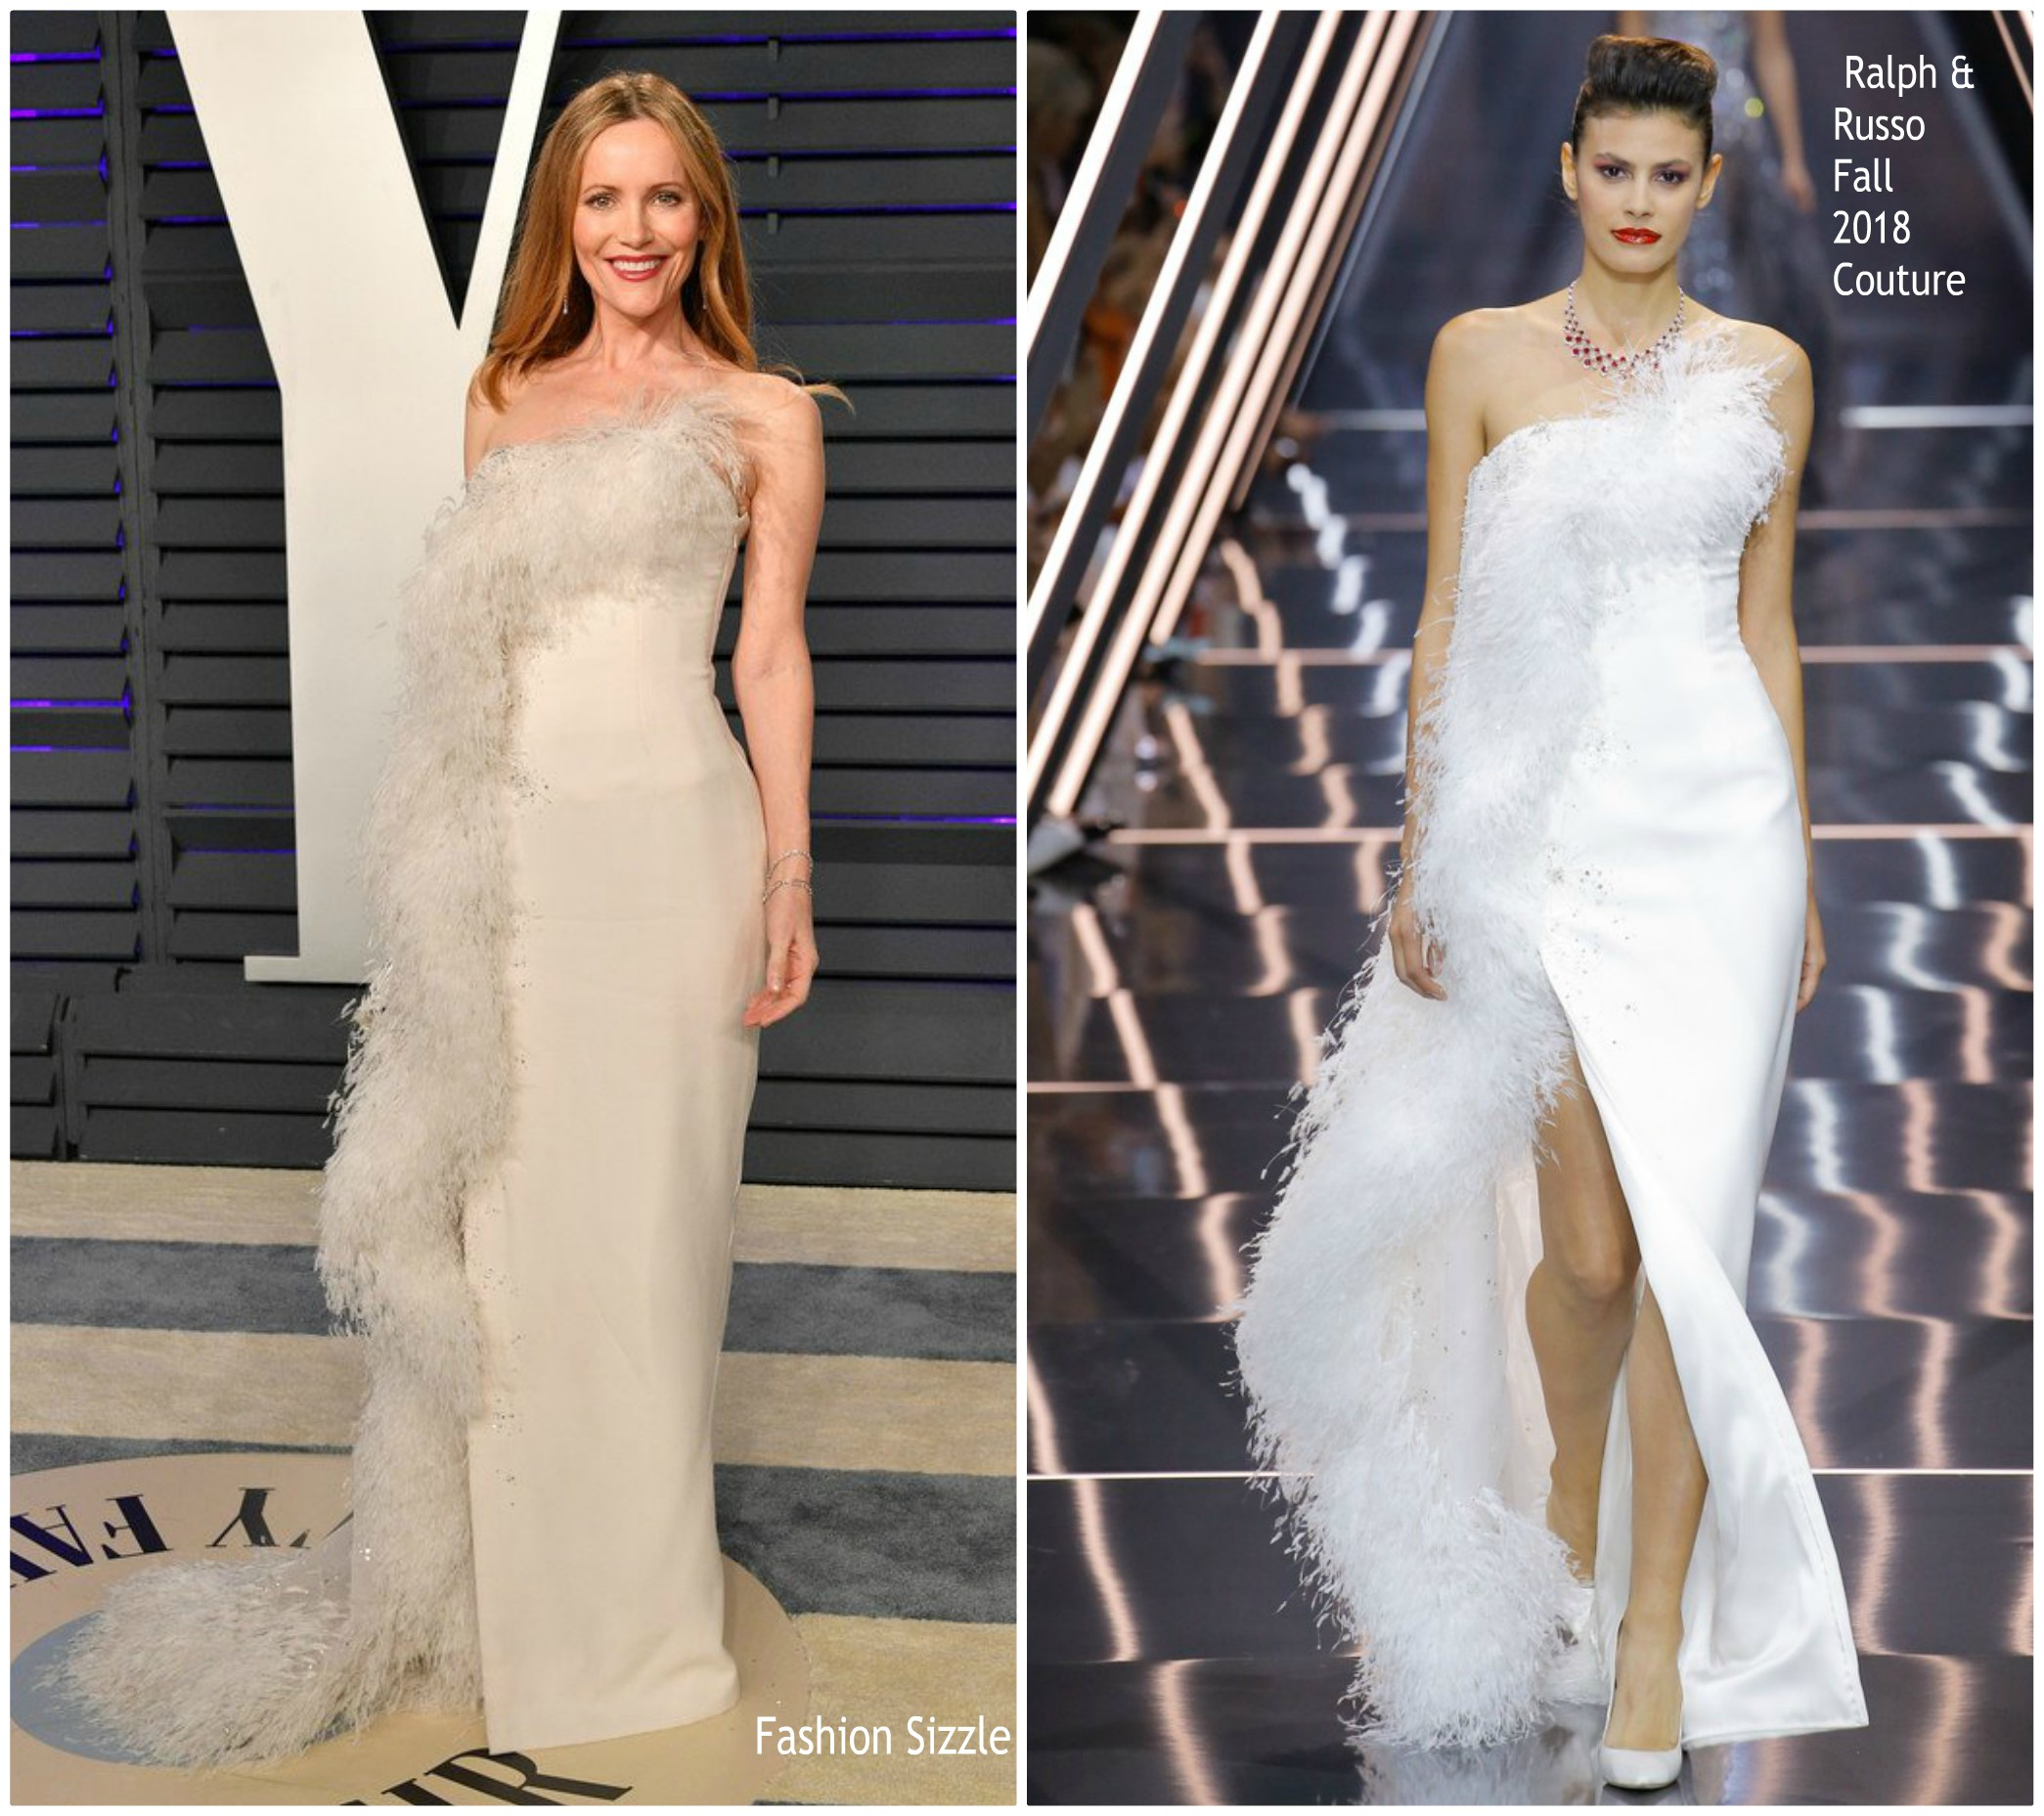 leslie-mann-in-ralph-russo-couture-2019-vanity-fair-oscar-party